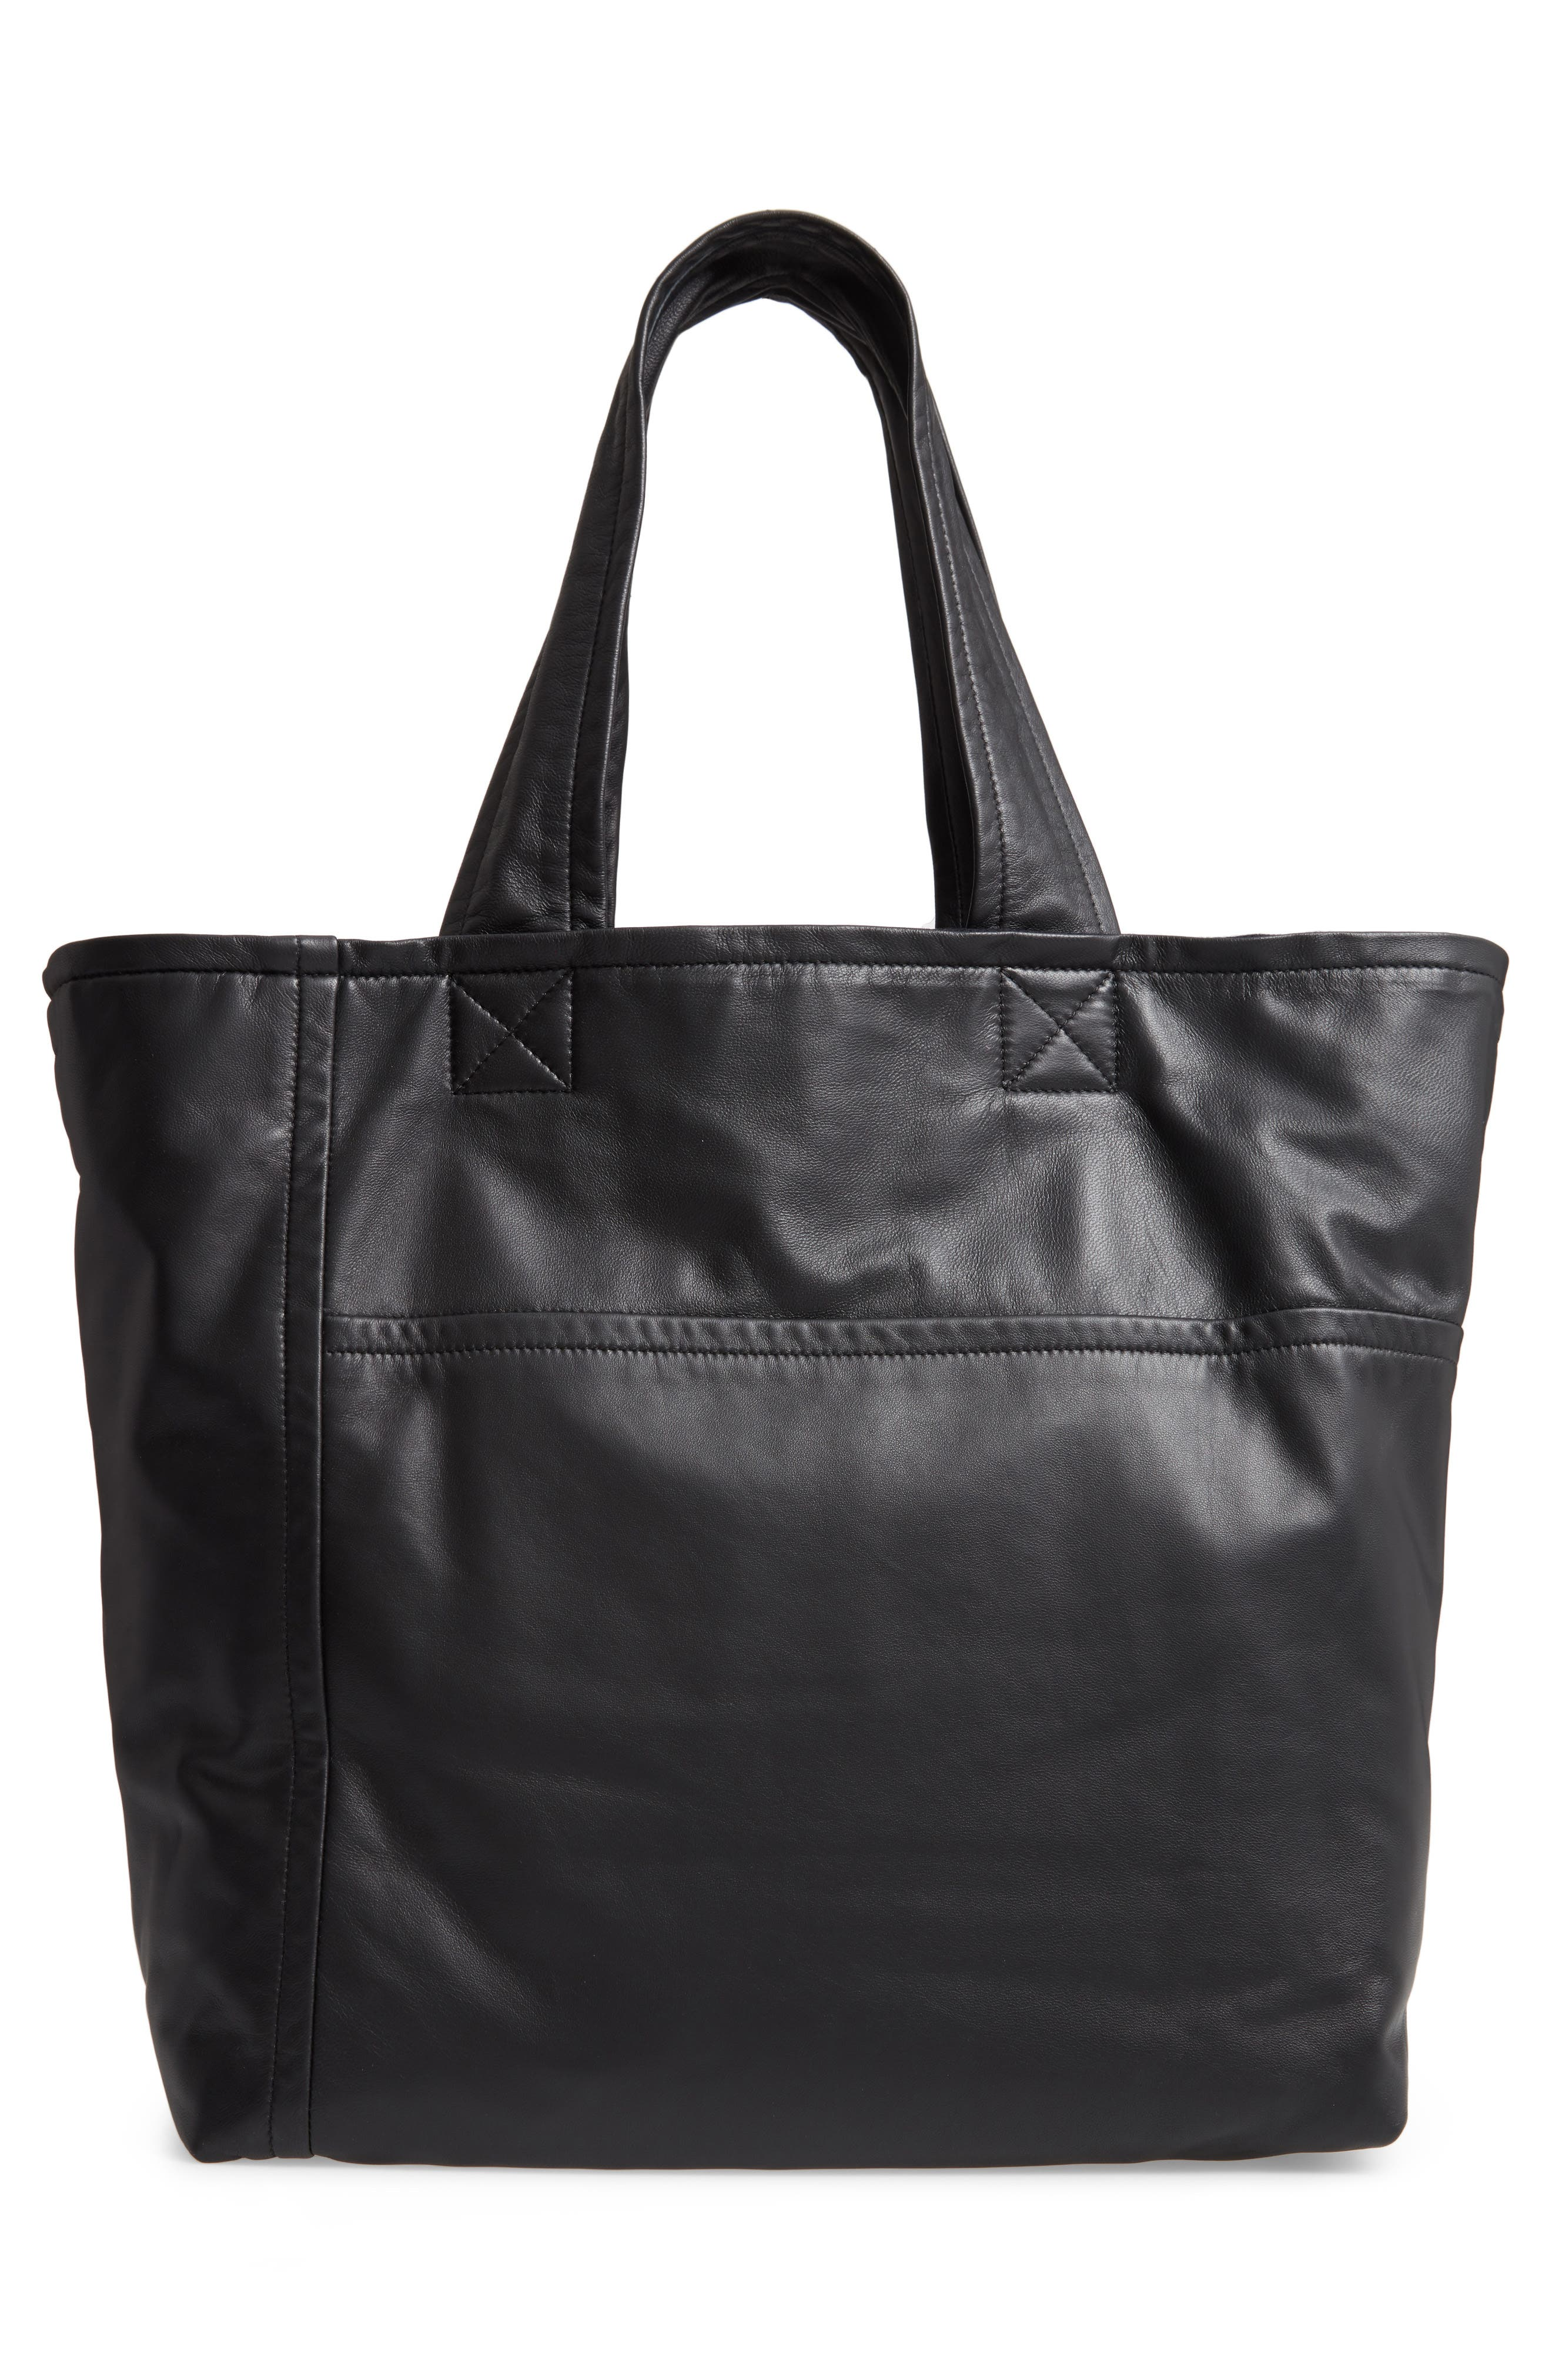 VICTORIA BECKHAM, Sunday Leather Tote Bag, Alternate thumbnail 3, color, 001